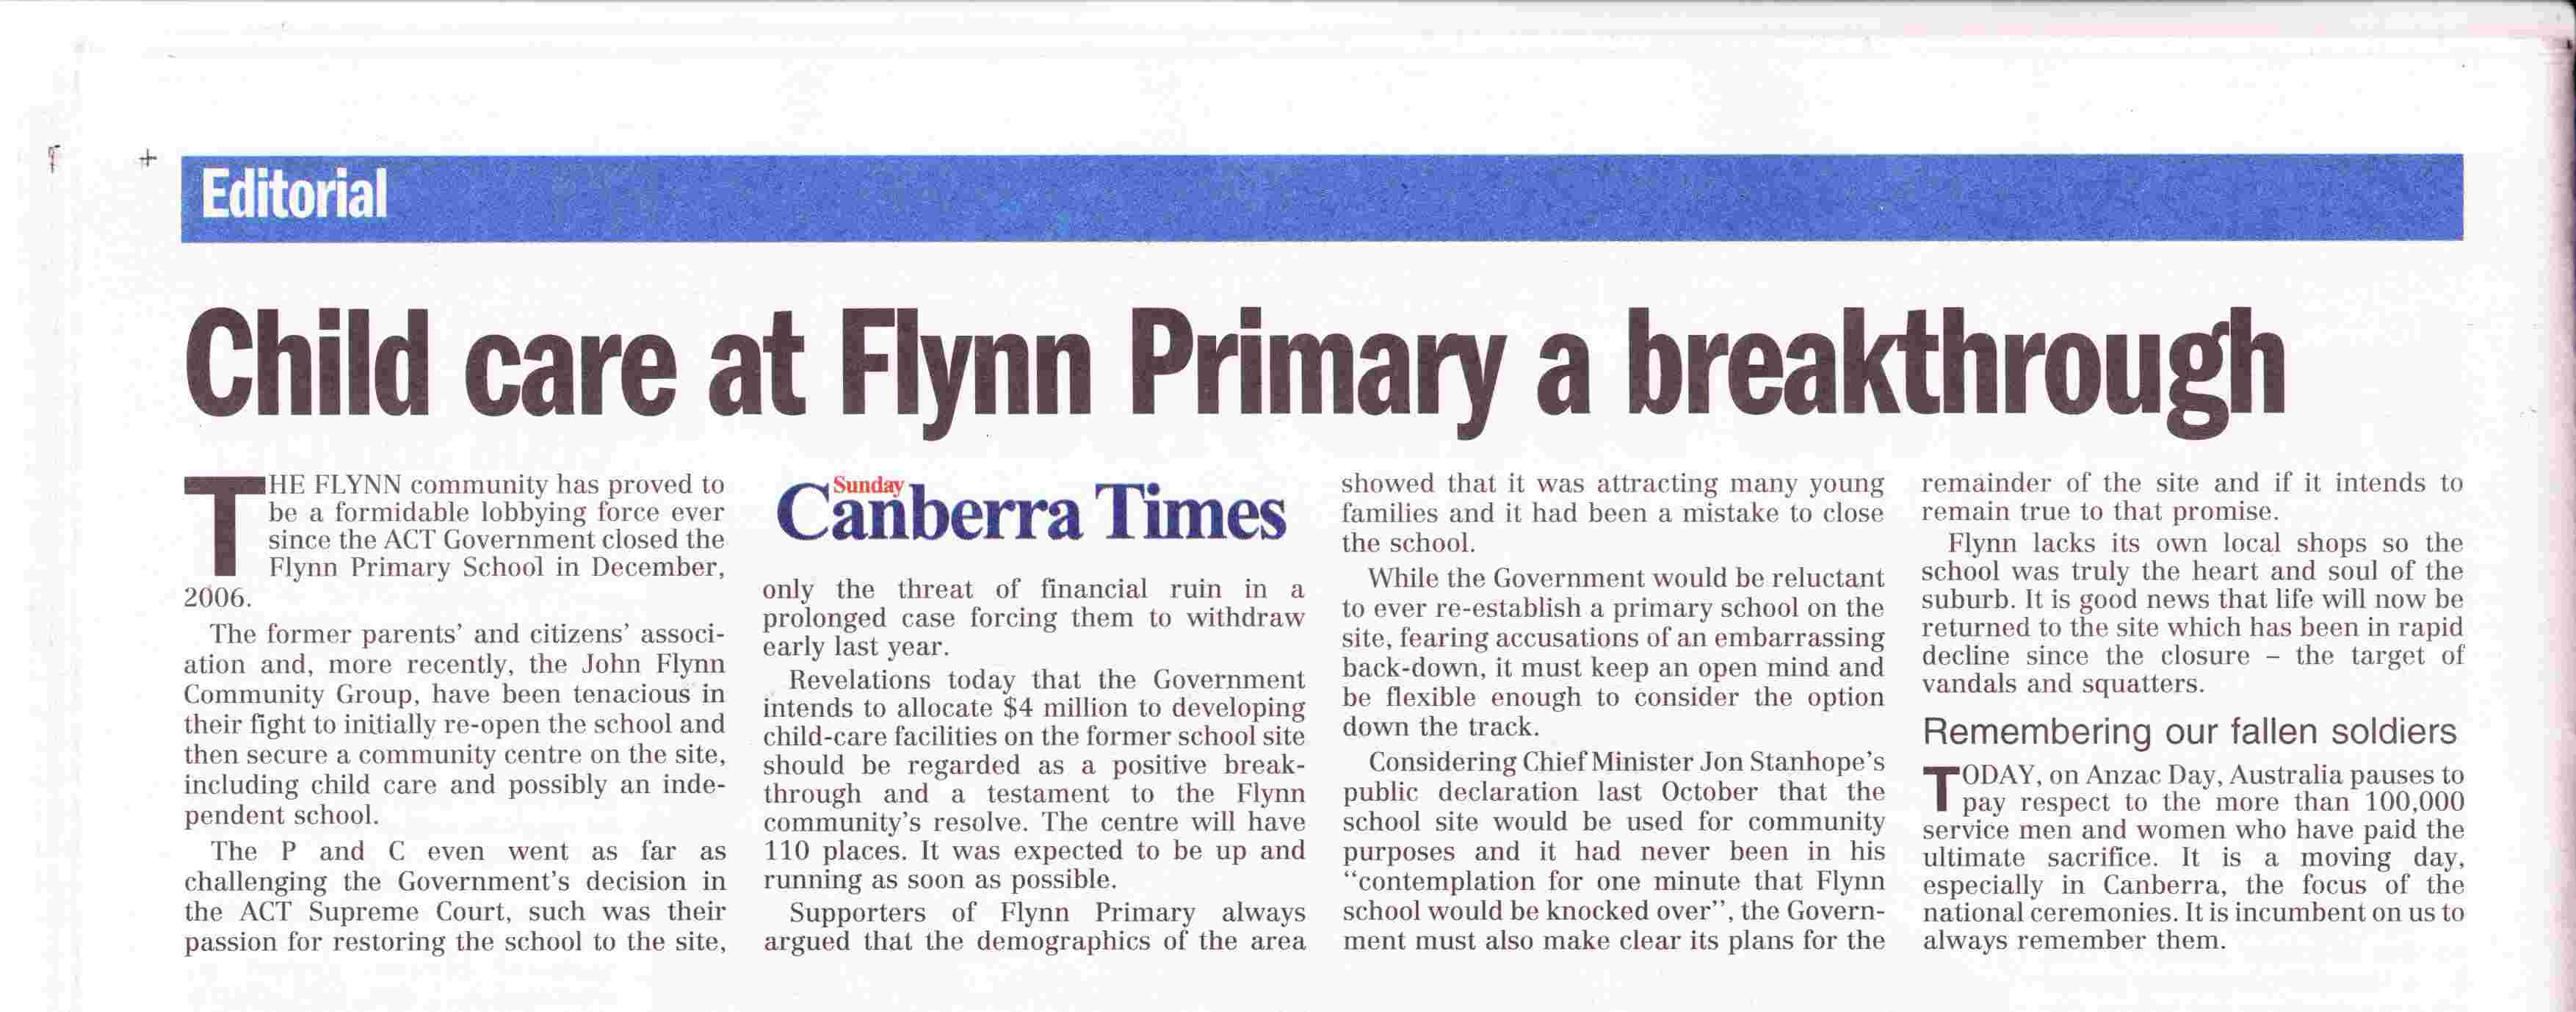 Canberra Times Editorial, April 25 2010